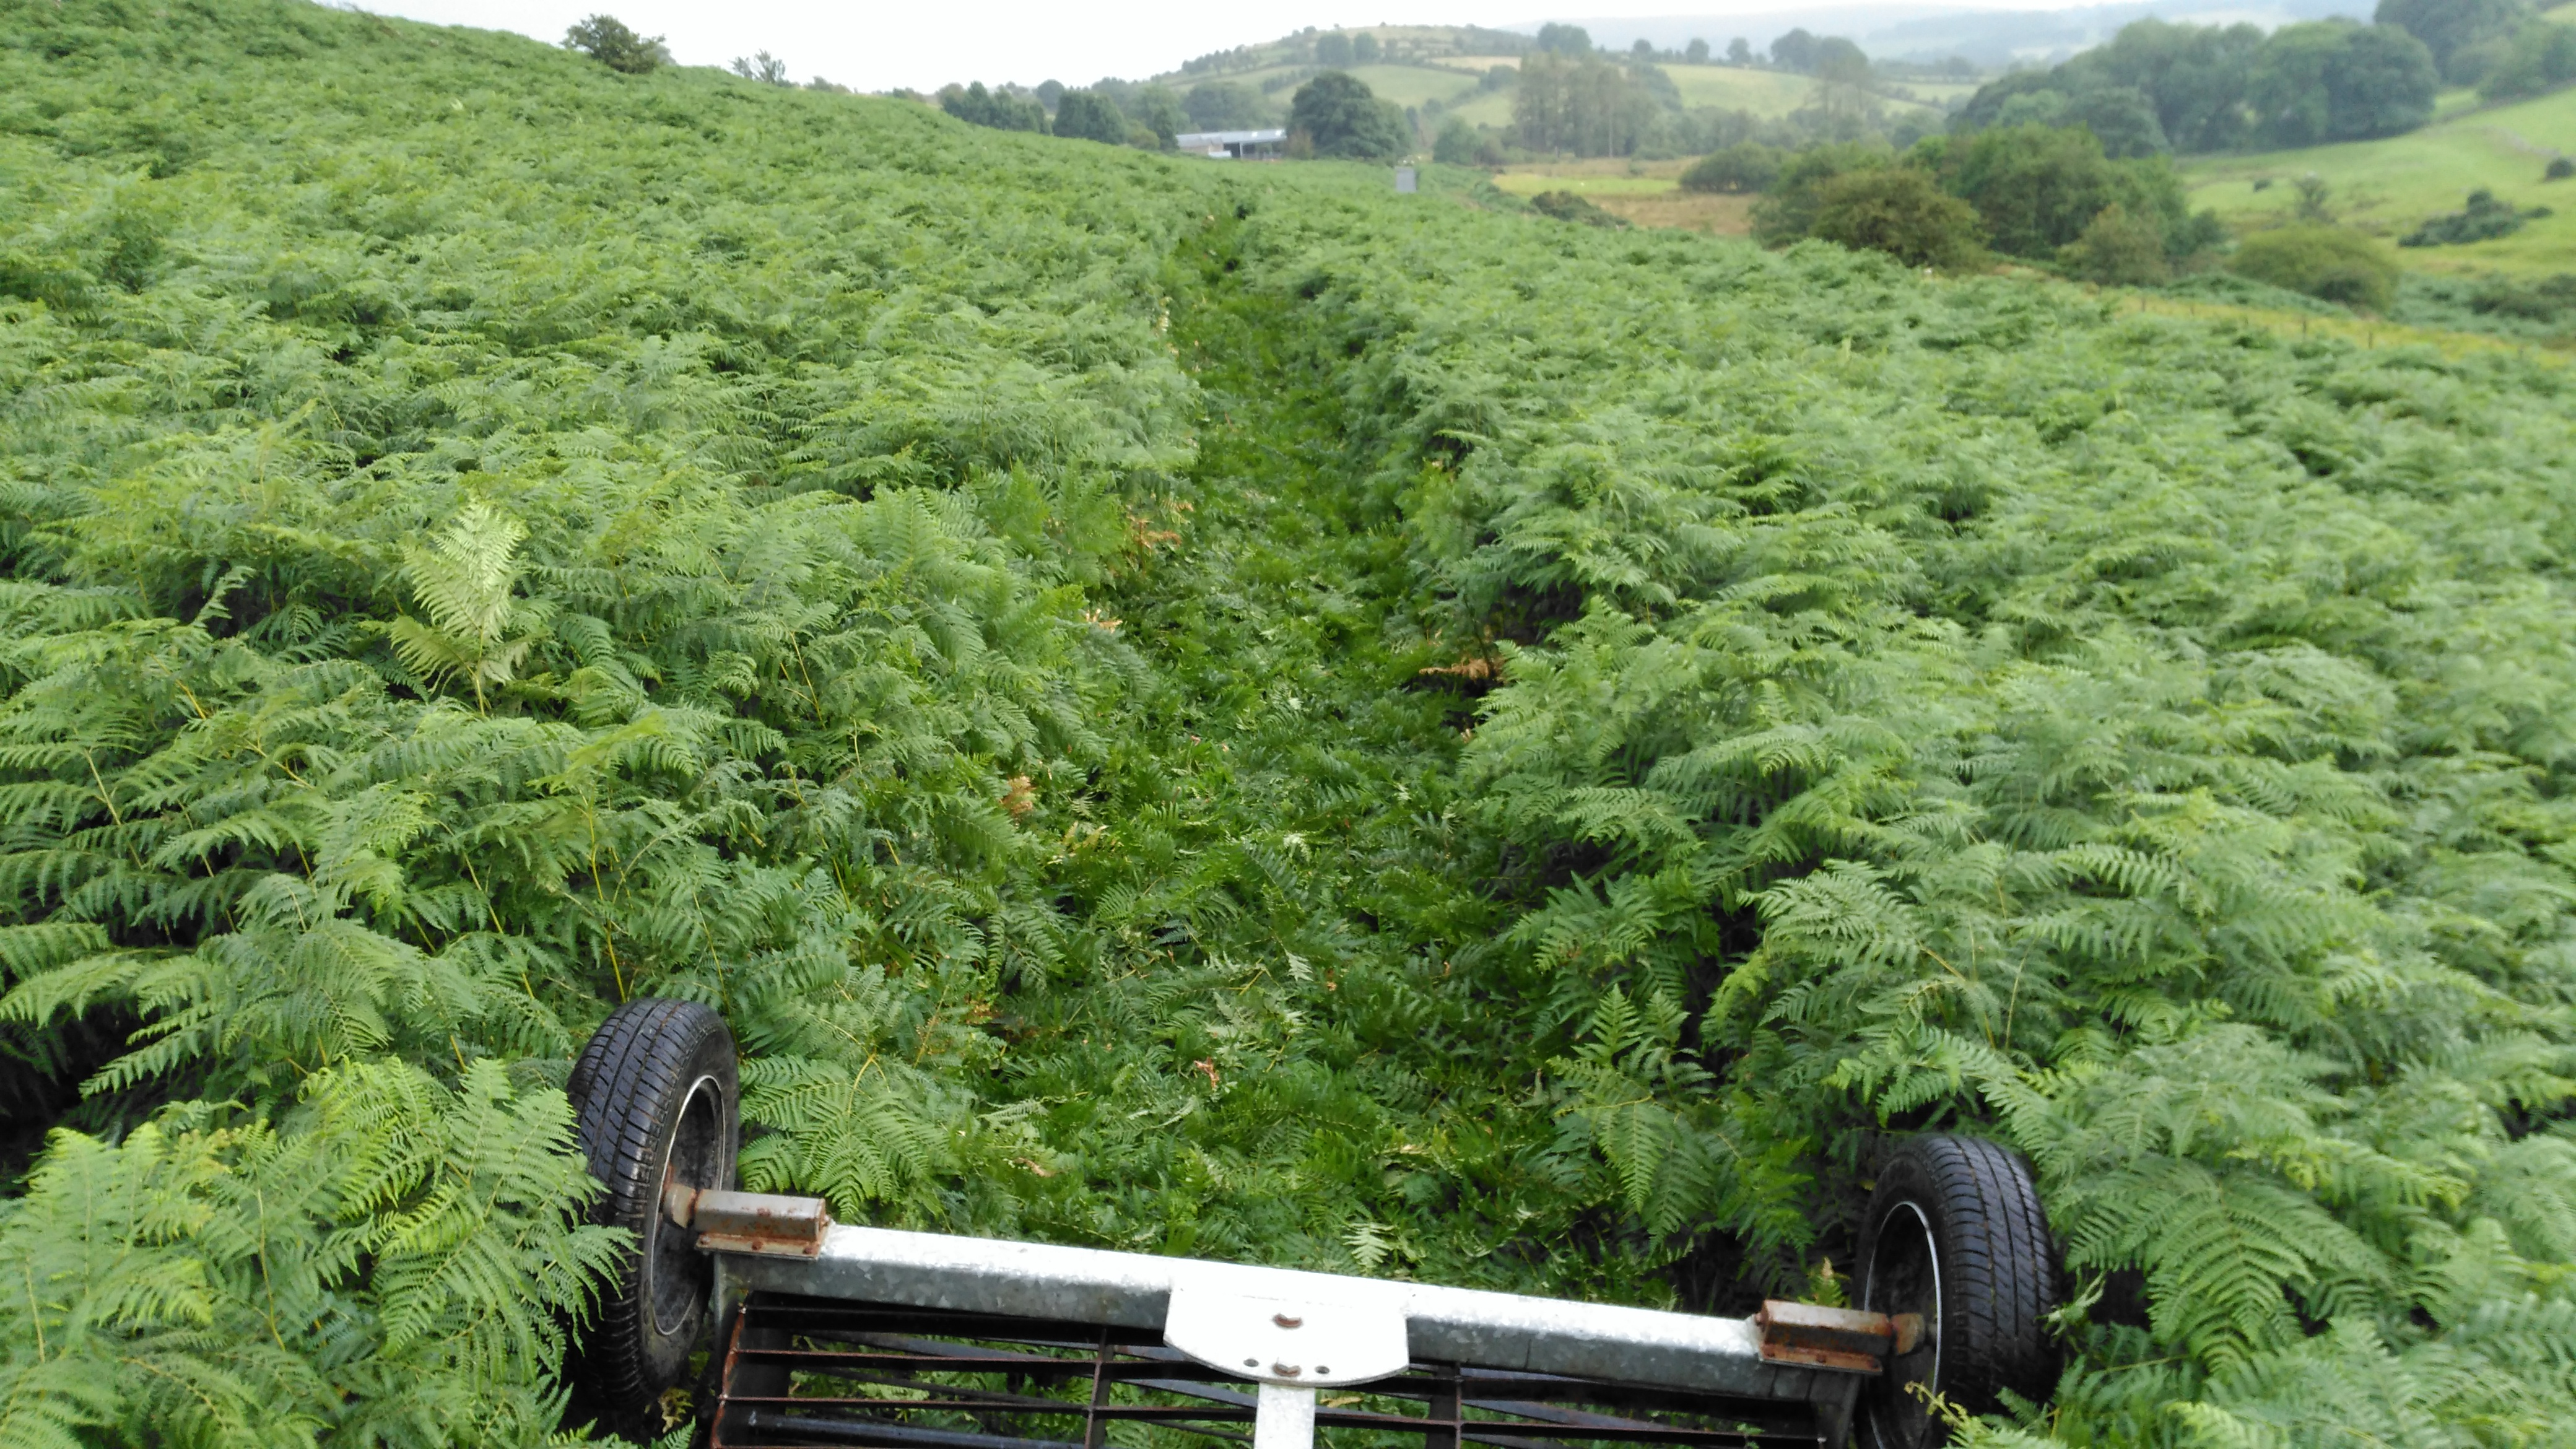 Rolling bracken to reduce its growth